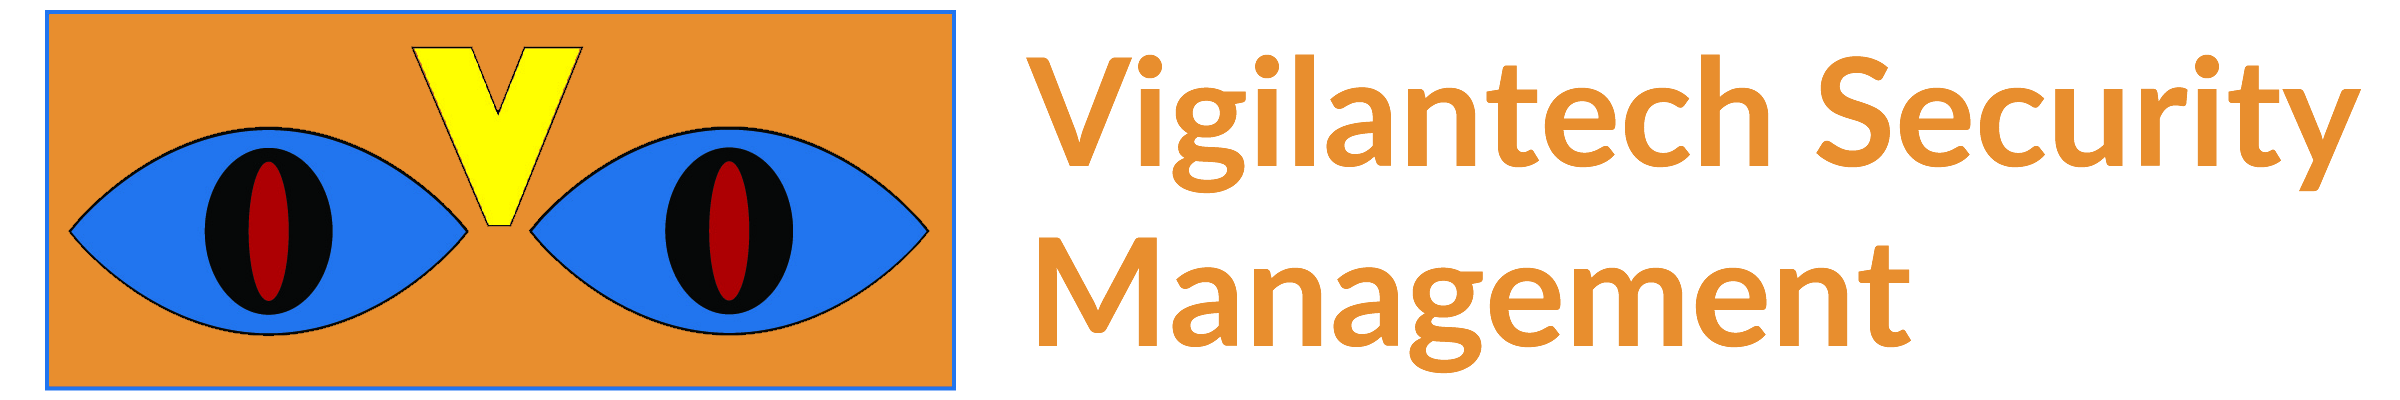 Vigilantech Security Management